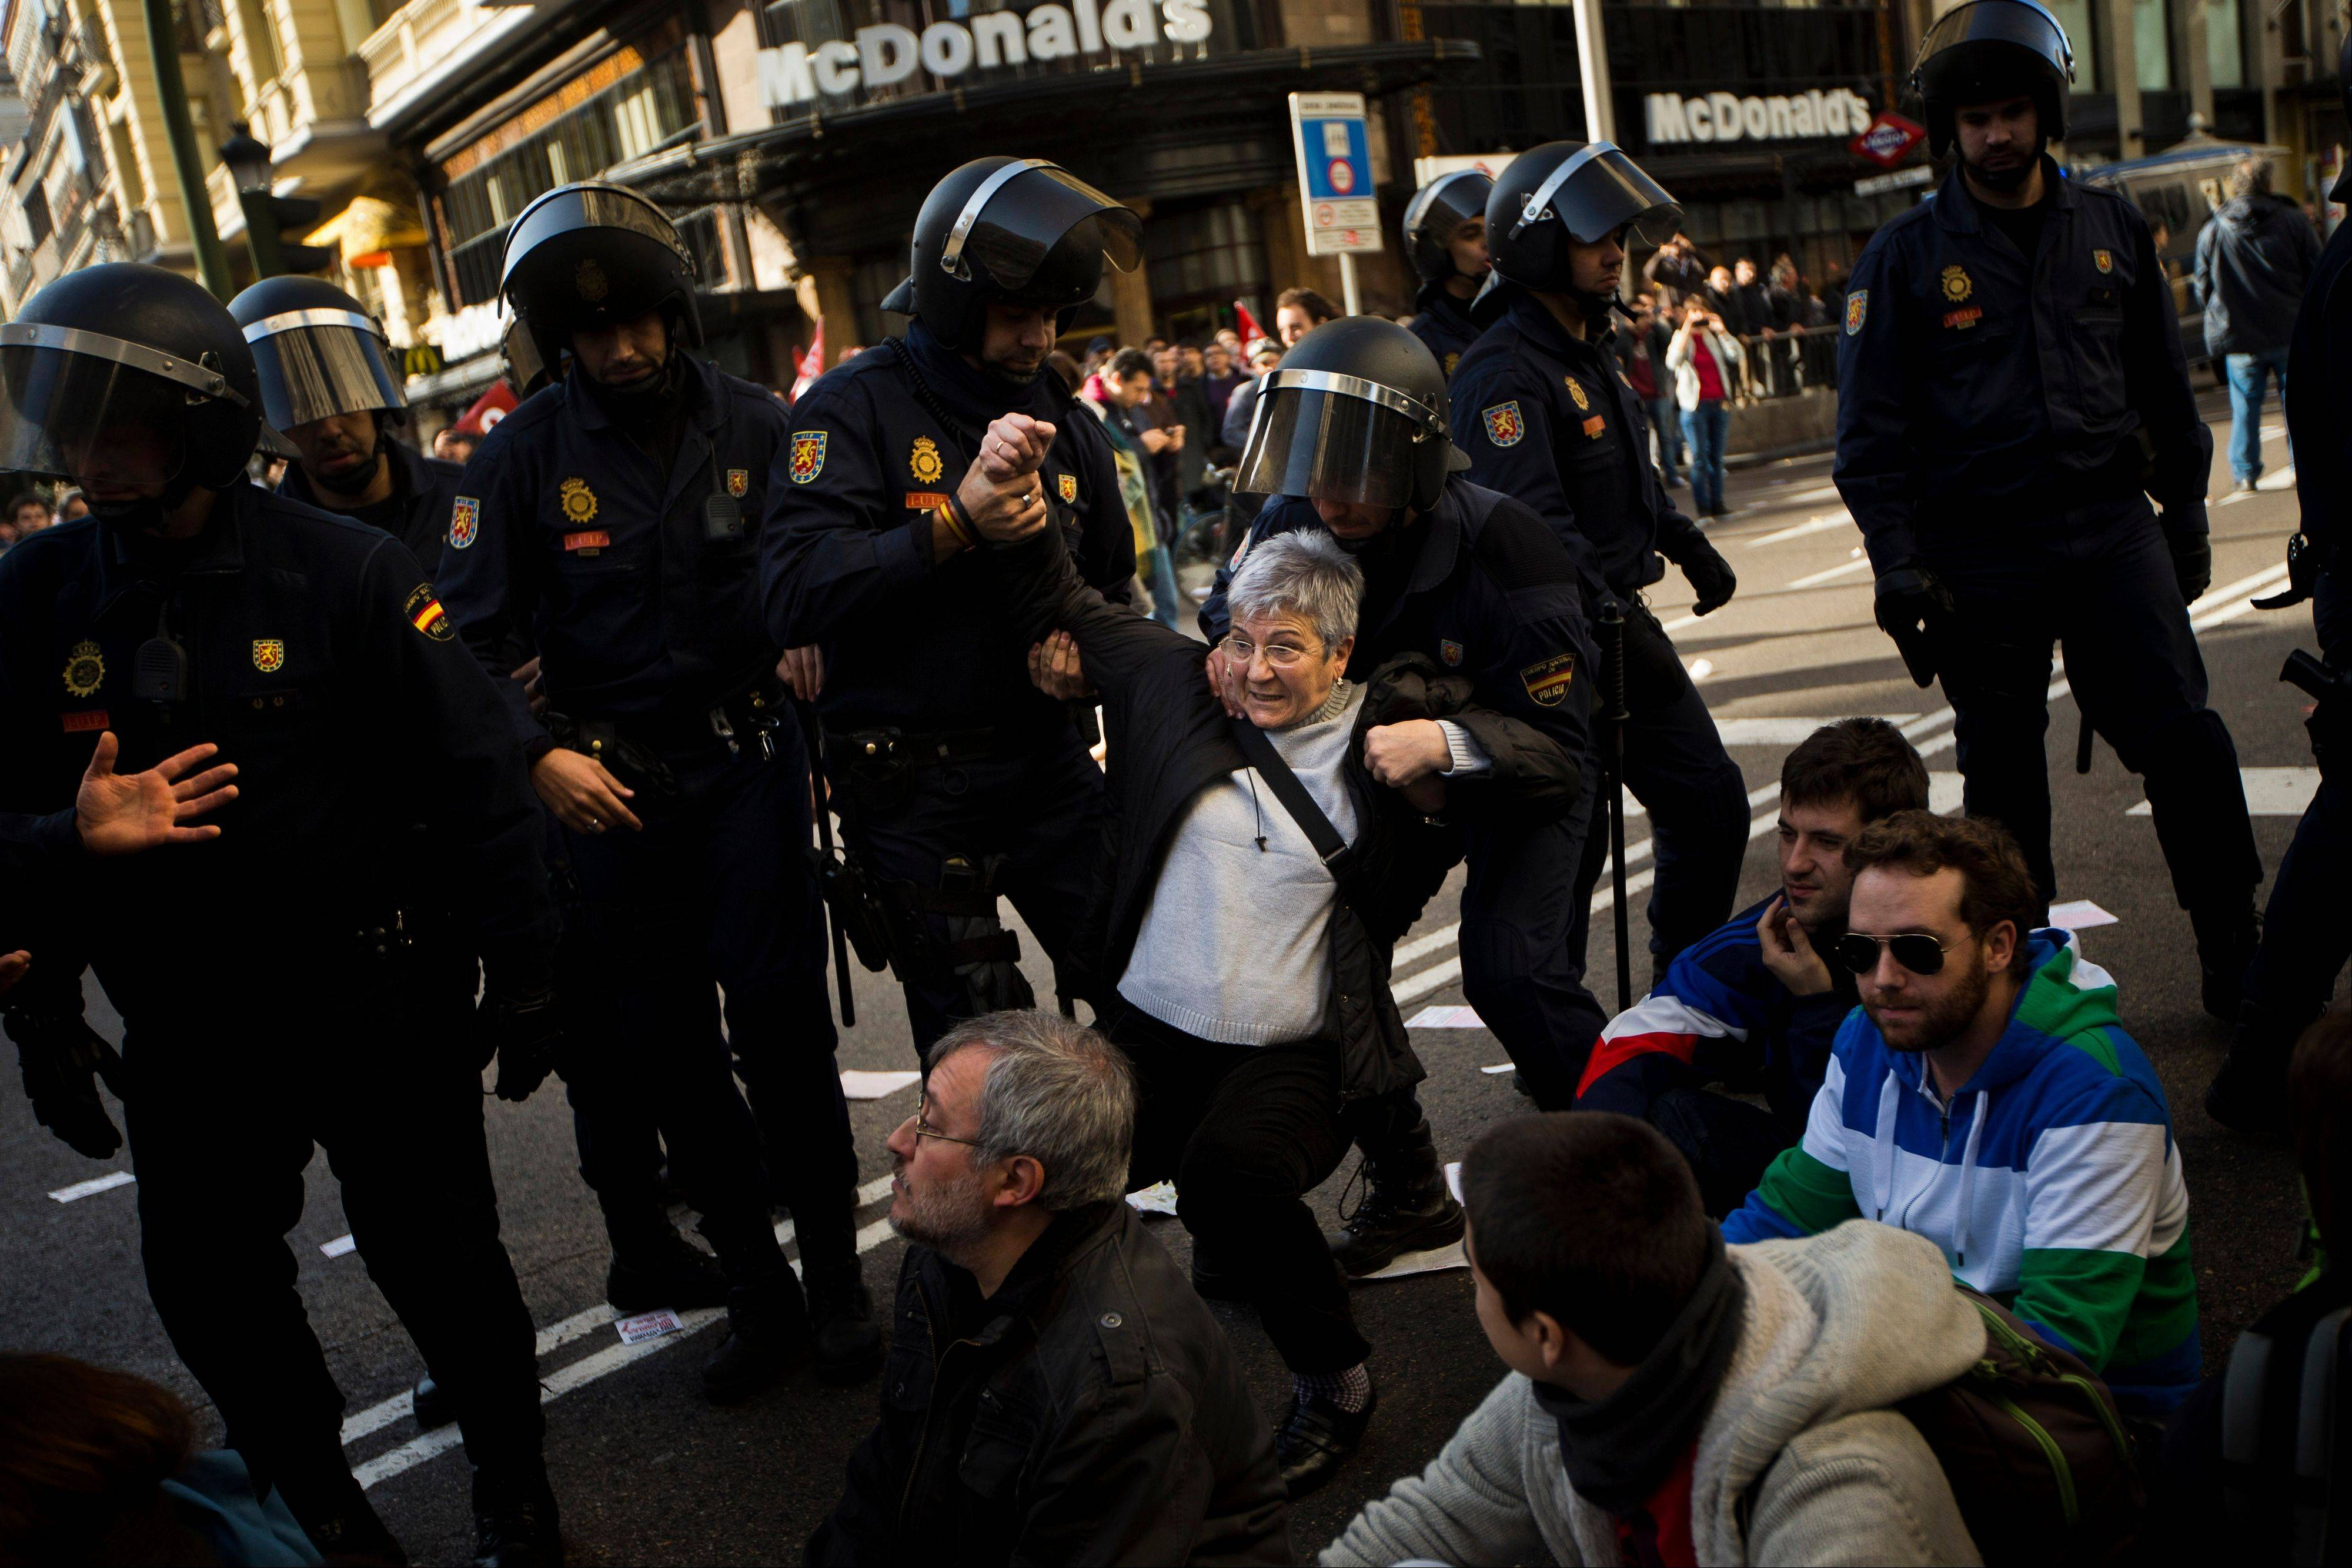 A protester is held by riot police during clashes in a general strike in Madrid, Spain, Wednesday, Nov. 14, 2012. Spain�s General Workers� Union said the nationwide stoppage, the second this year, was being observed by nearly all workers in the automobile, energy, shipbuilding and constructions industries.